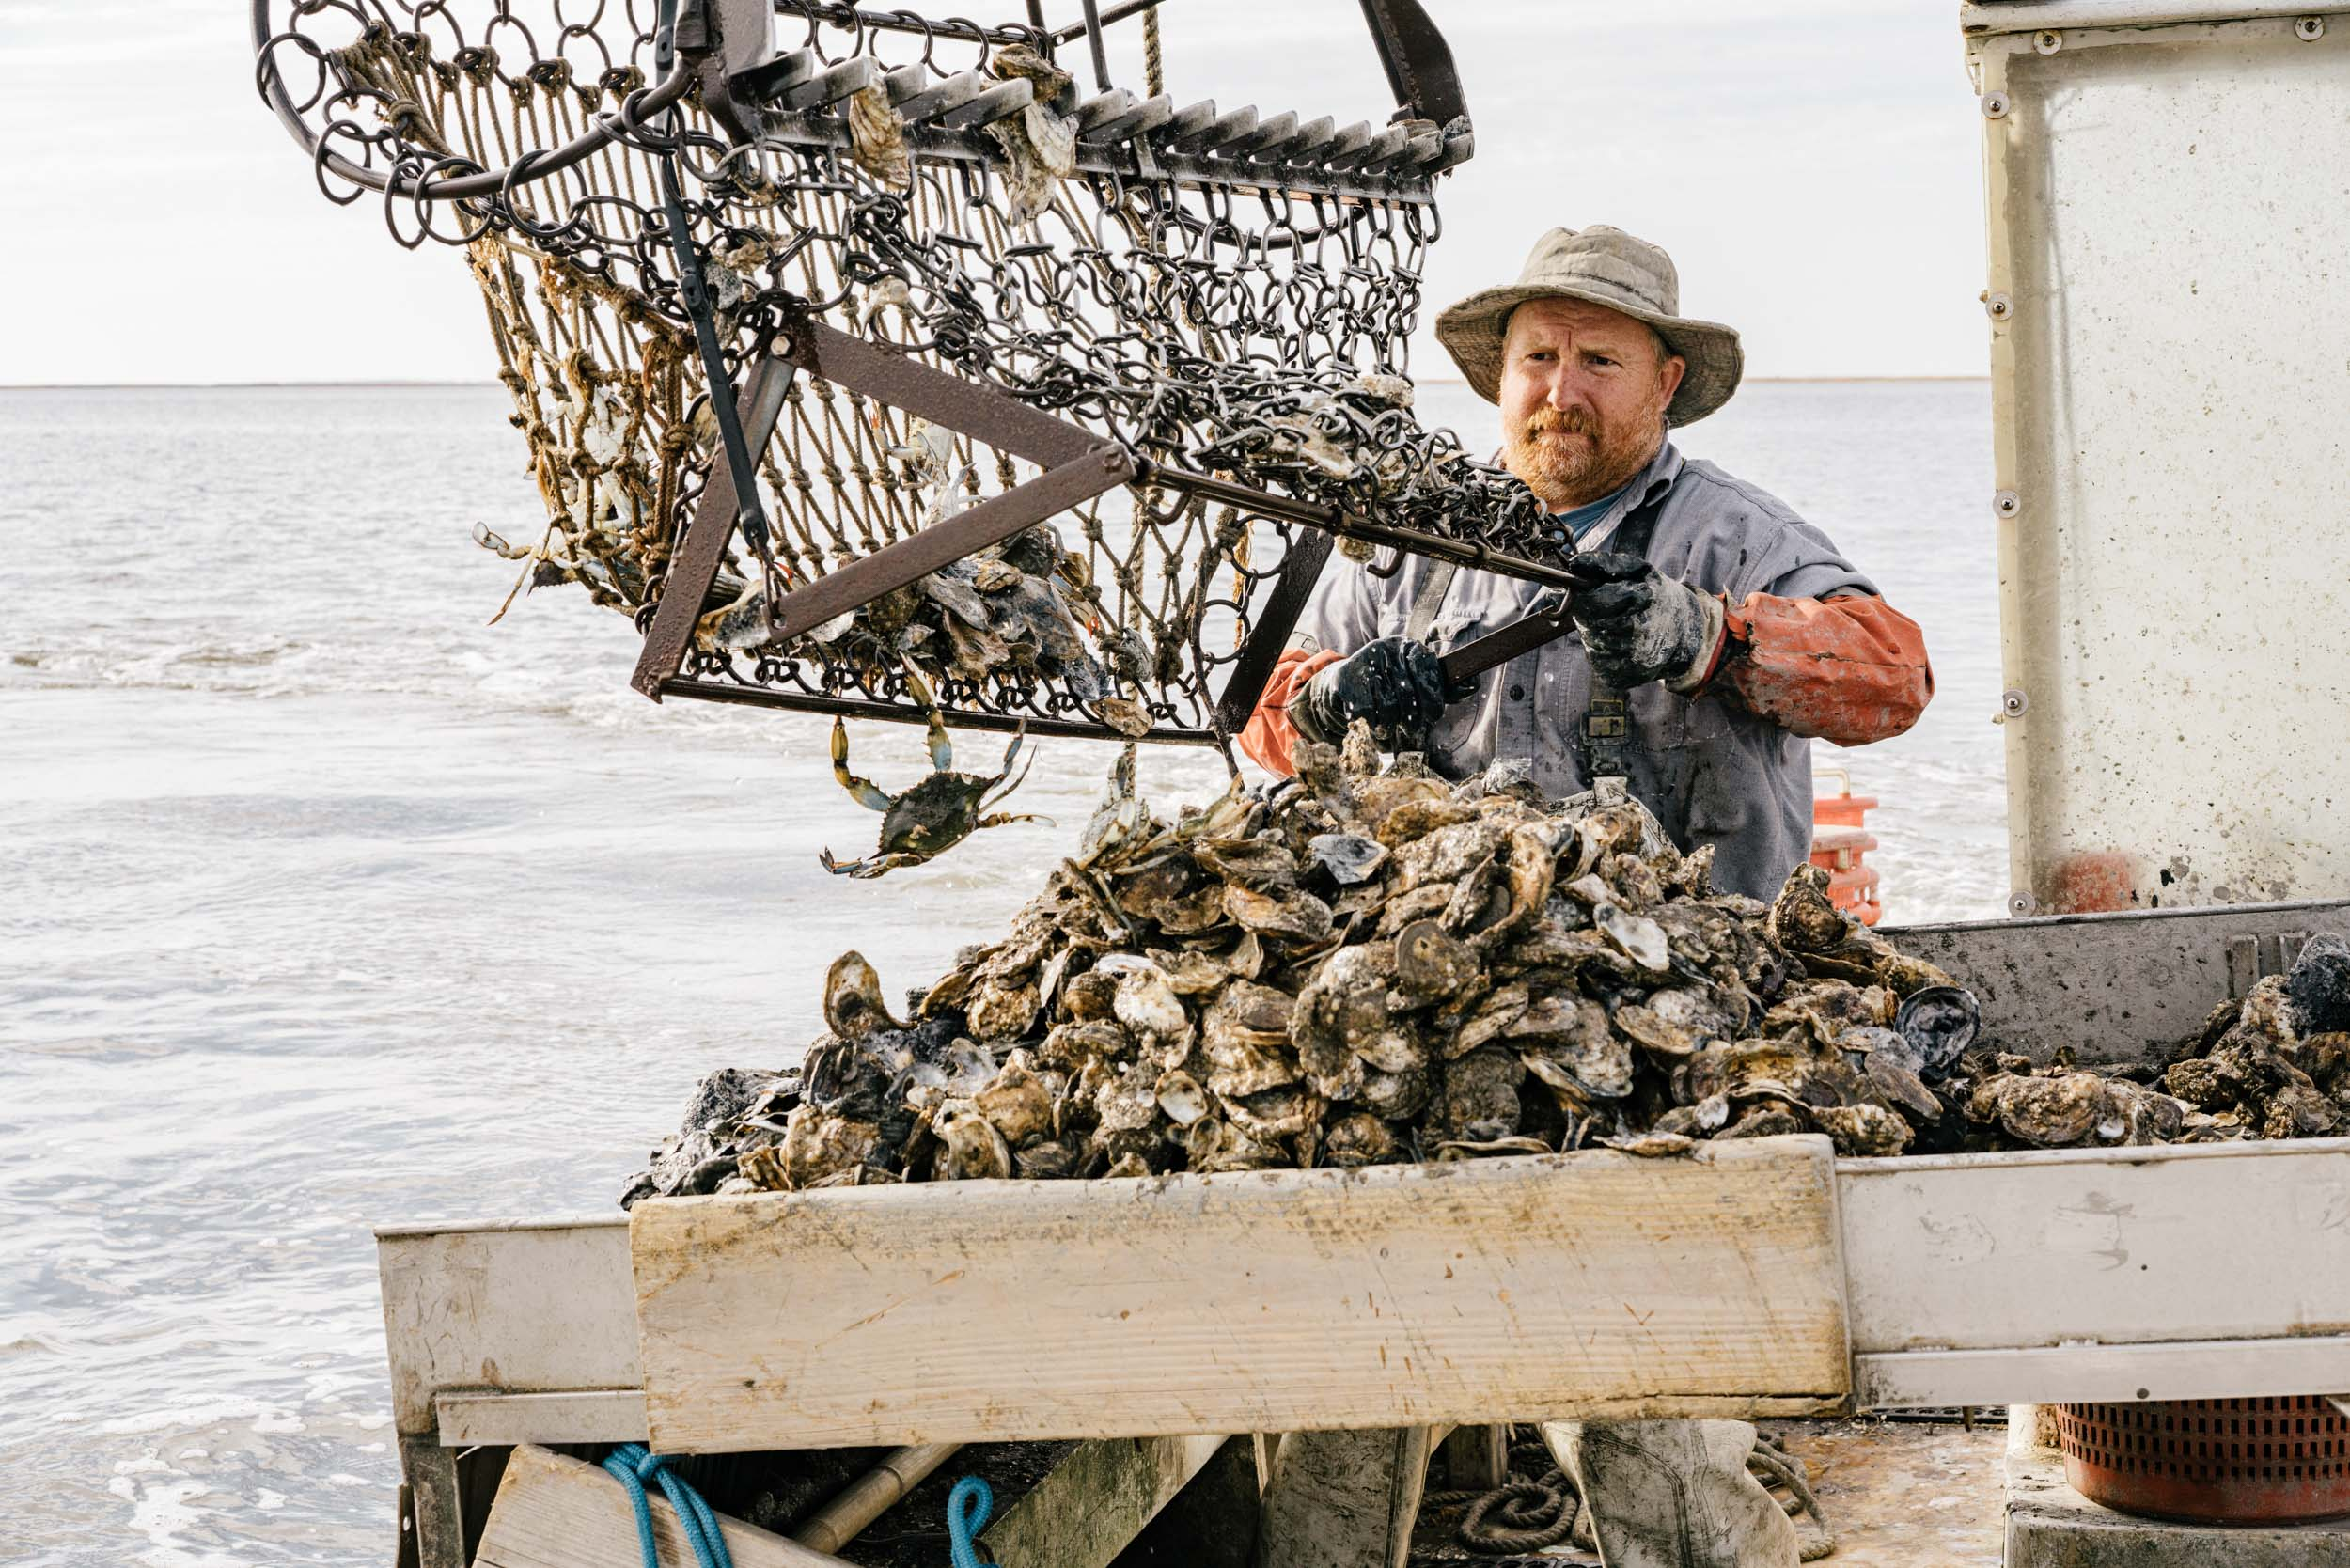 waterman dumping oysters to sort